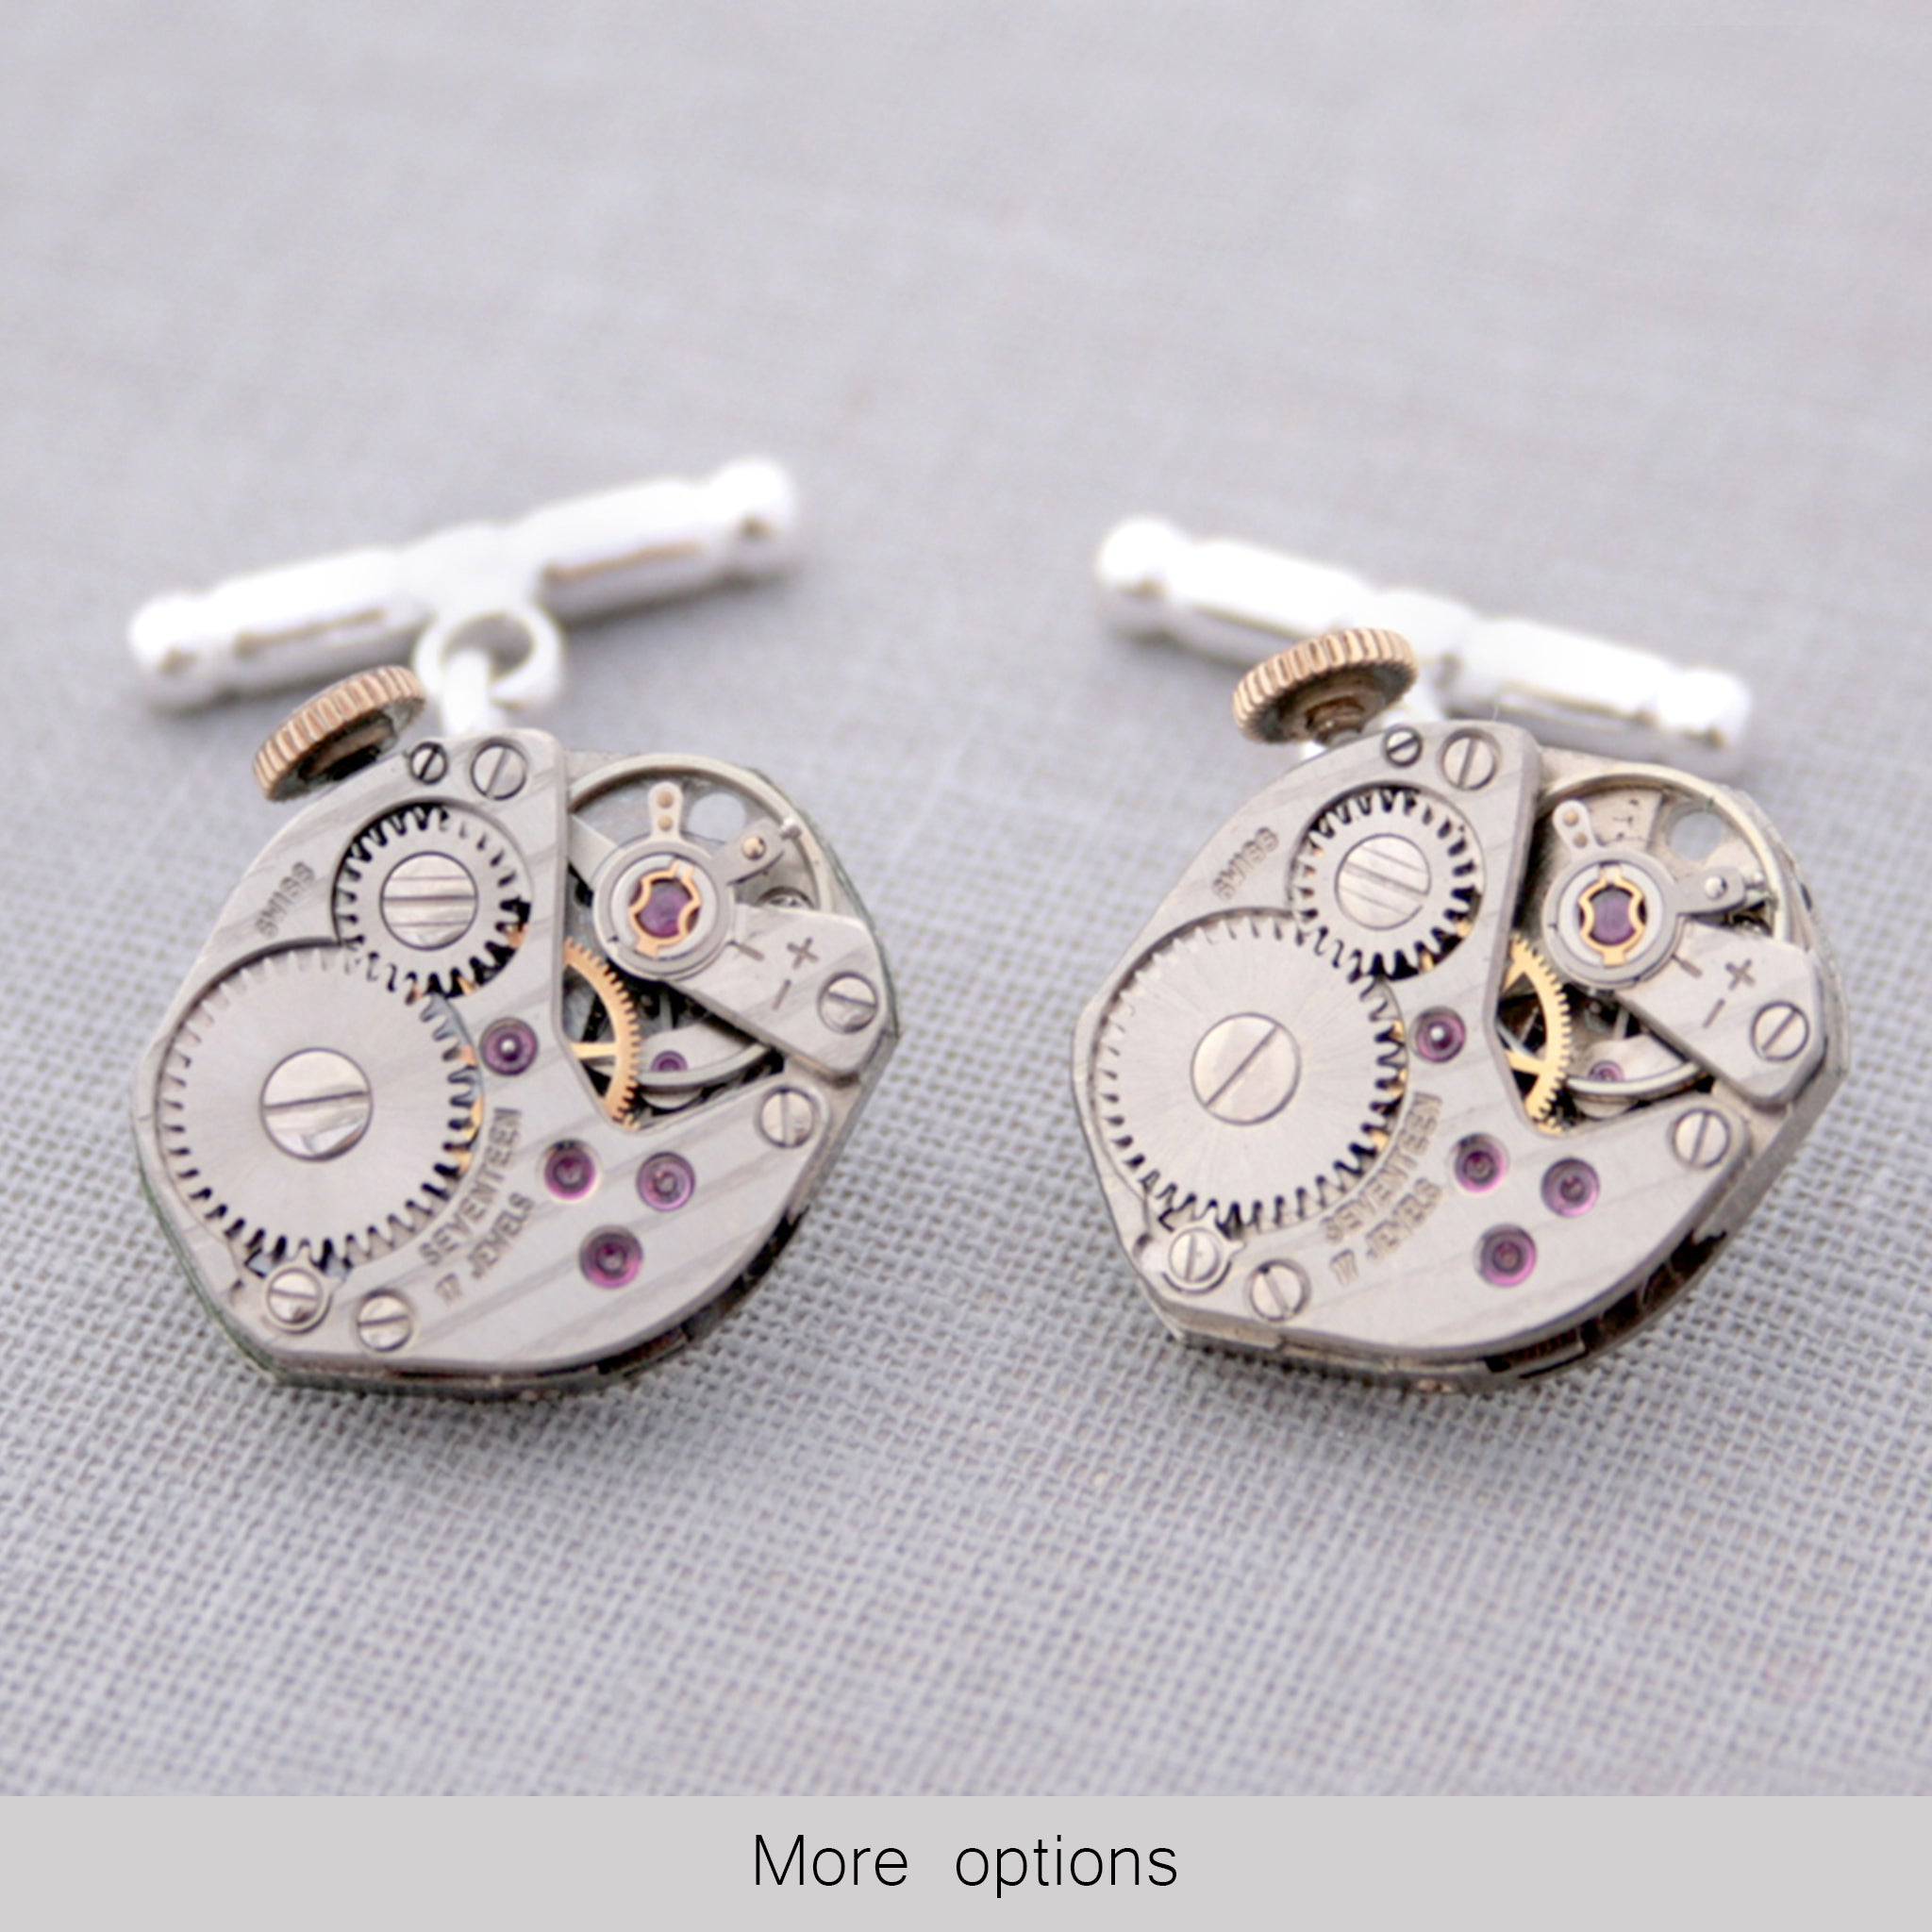 Watch Cufflinks on Chains